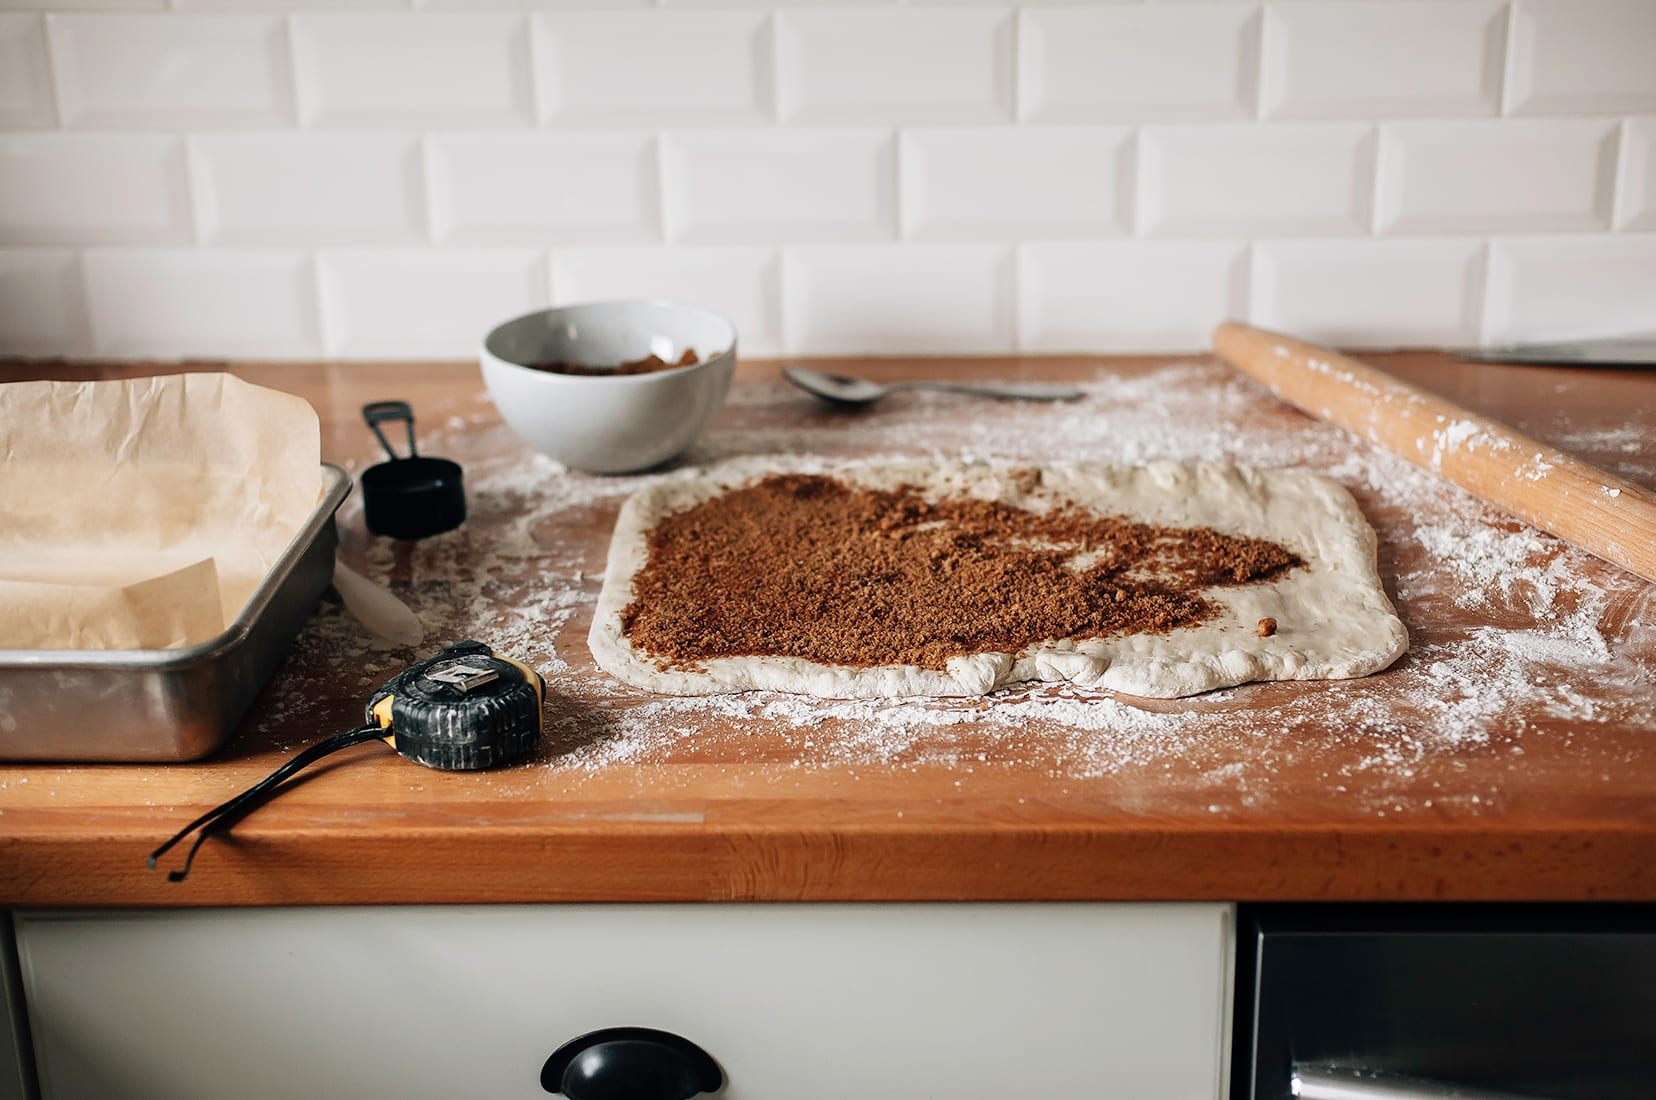 Image shows some rolled out dough with a brown sugar mixture spread on top of the surface of the dough.